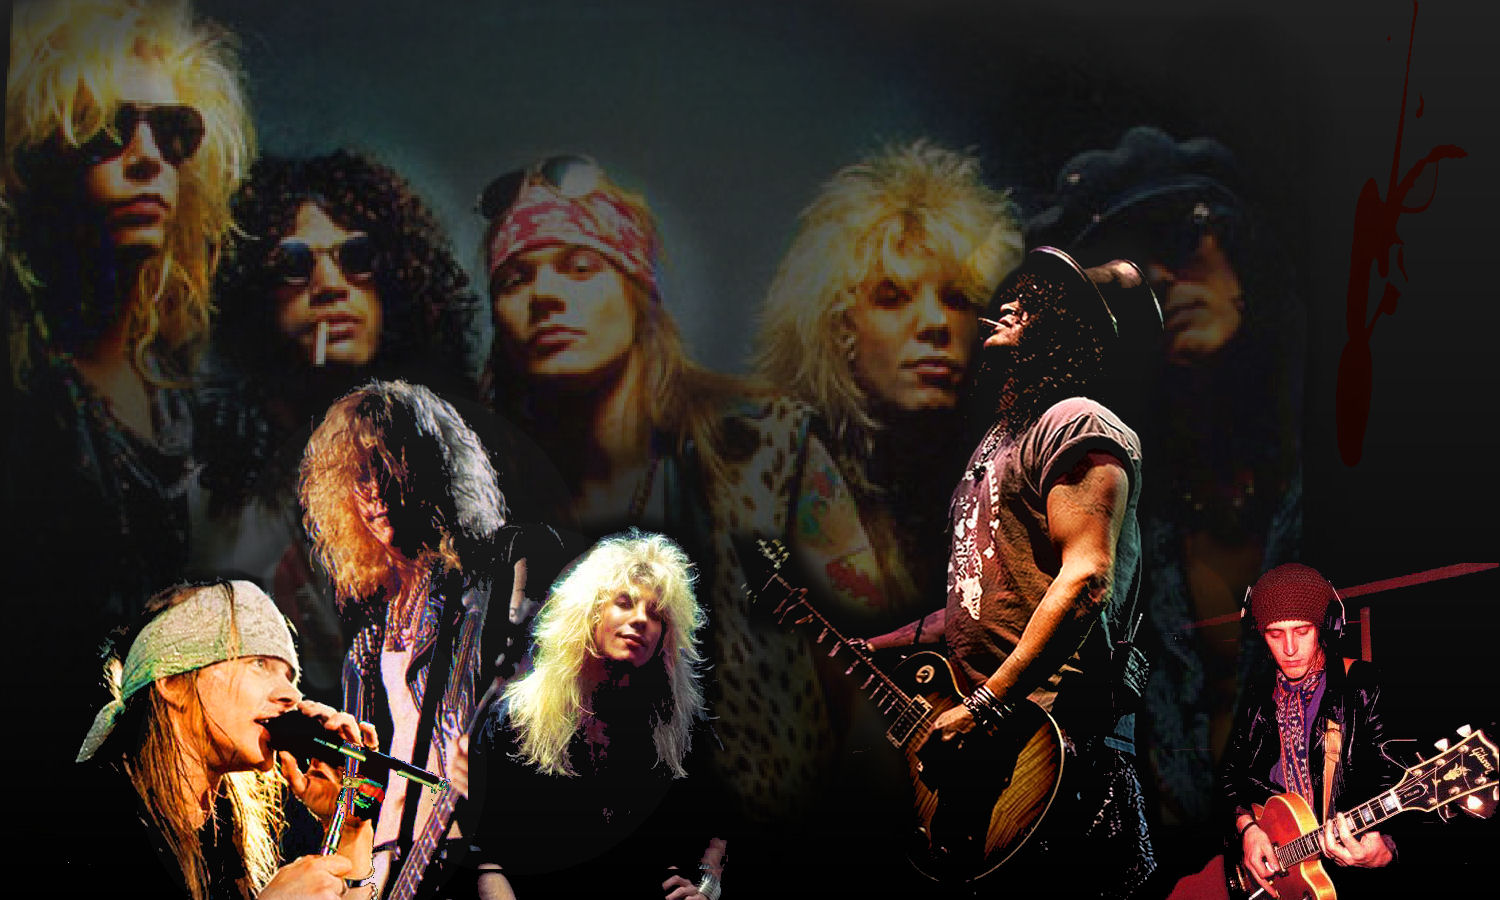 Guns_N___Roses___Wallpaper_02_by_sarahhudson.jpg